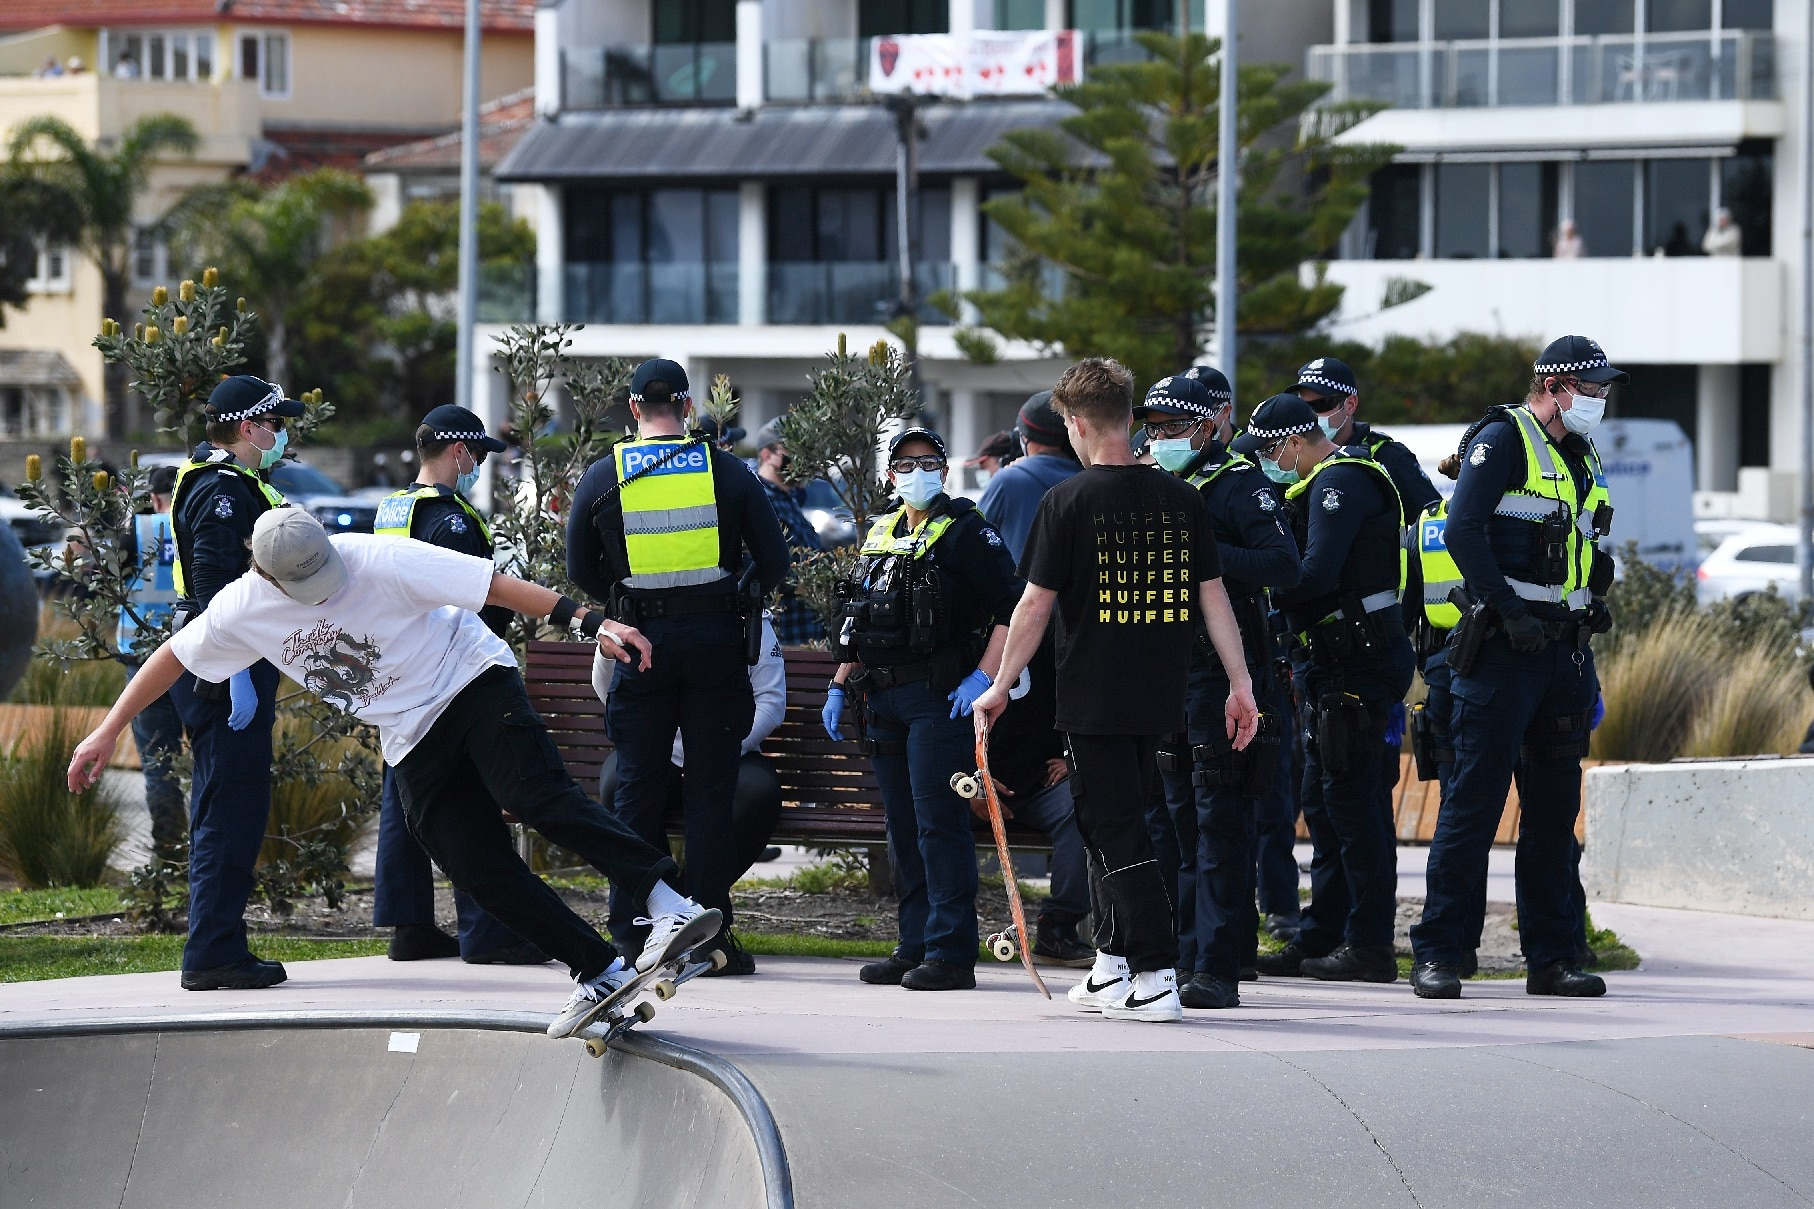 Multiple arrests were made at an anti-lockdown rally in St Kilda, Melbourne.